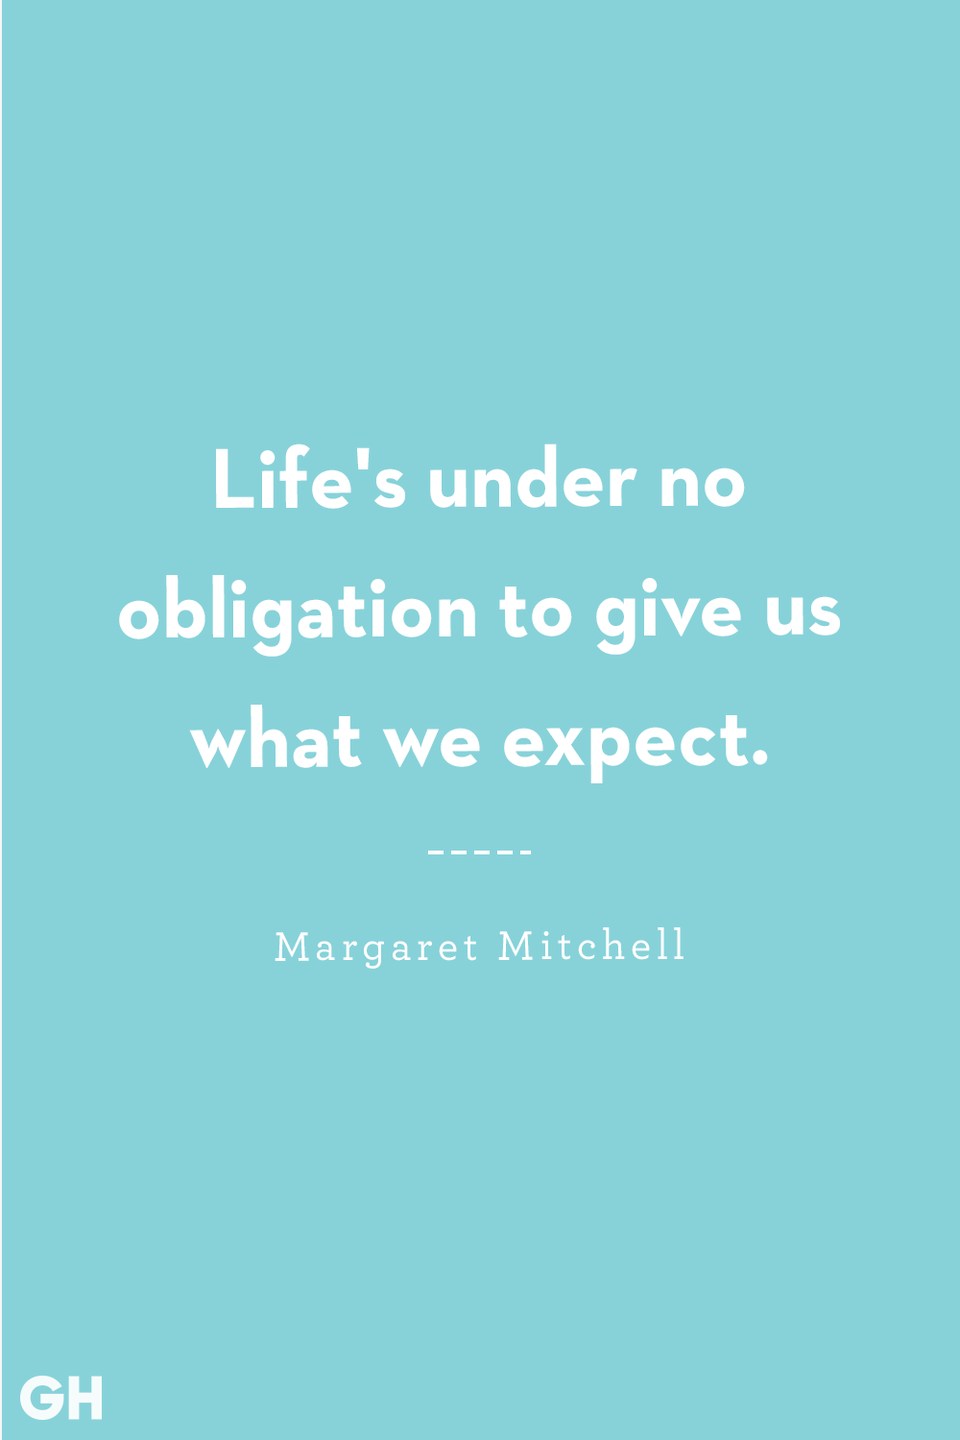 <p>Life's under no obligation to give us what we expect.</p>